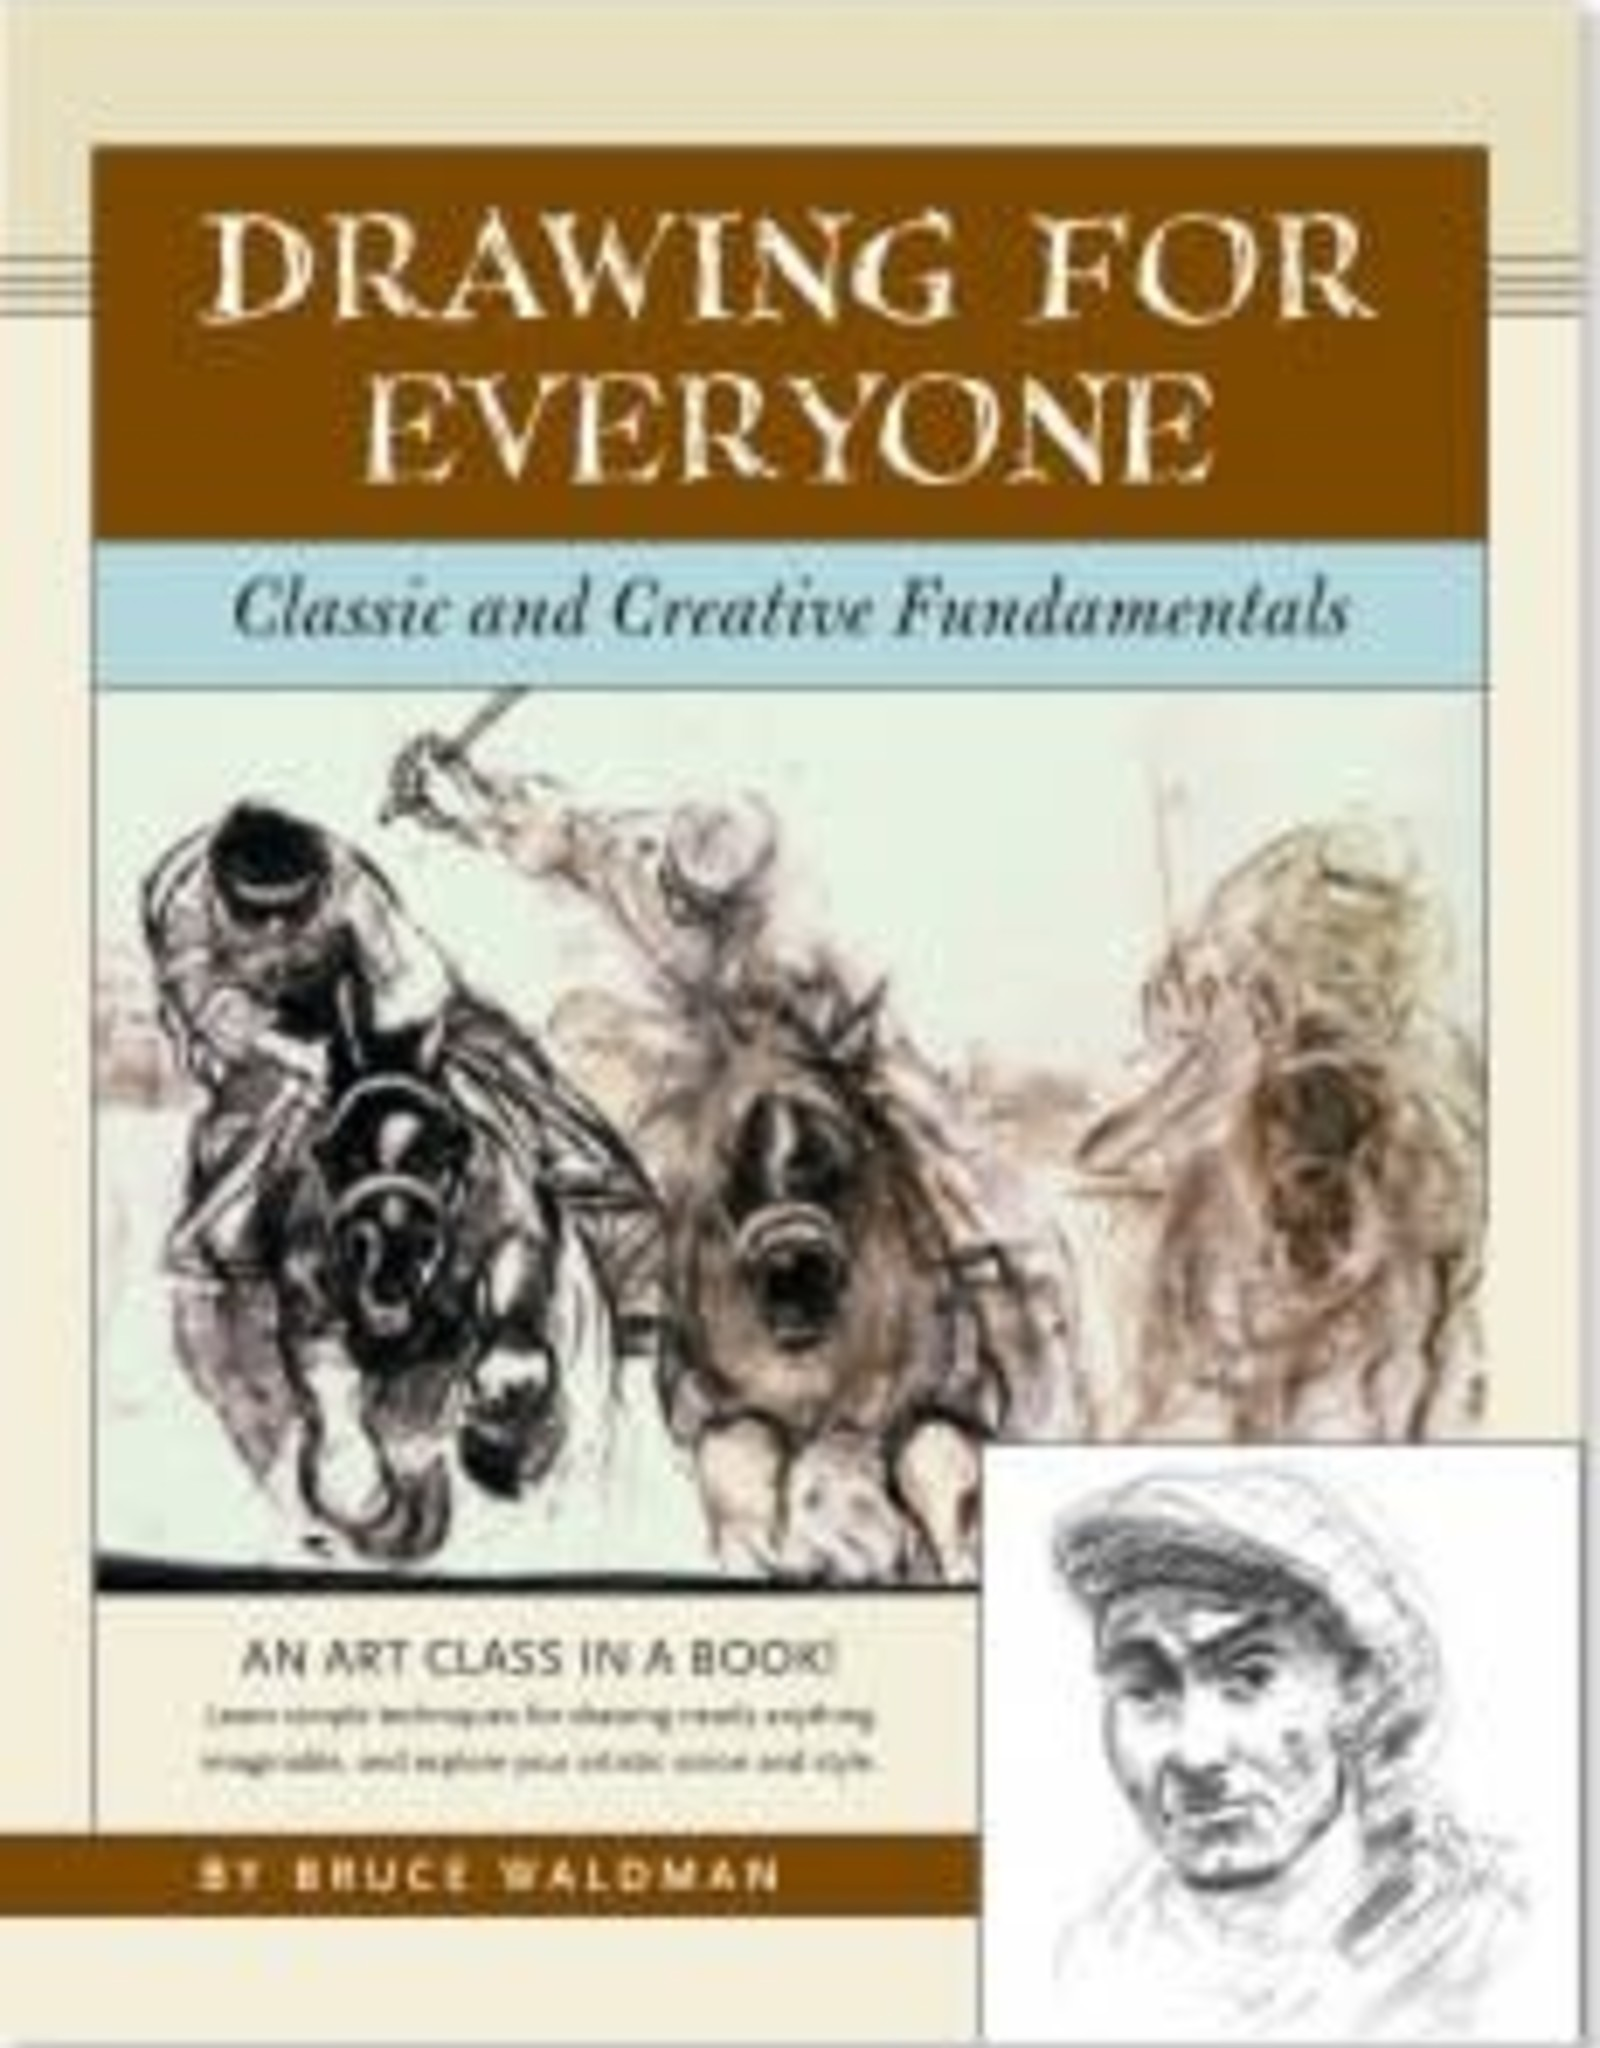 Peter Pauper Press DRAWING FOR EVERYONE: CLASSIC AND CREATIVE FUNDAMENTALS